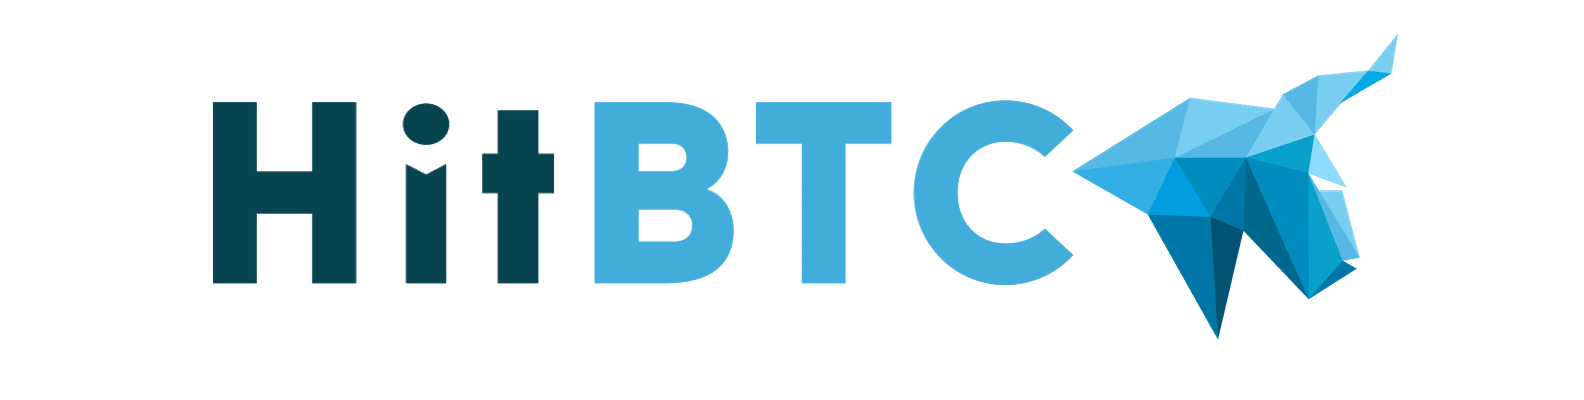 HitBTC exchange logo - Cryptocurrency exchanges vergelijken